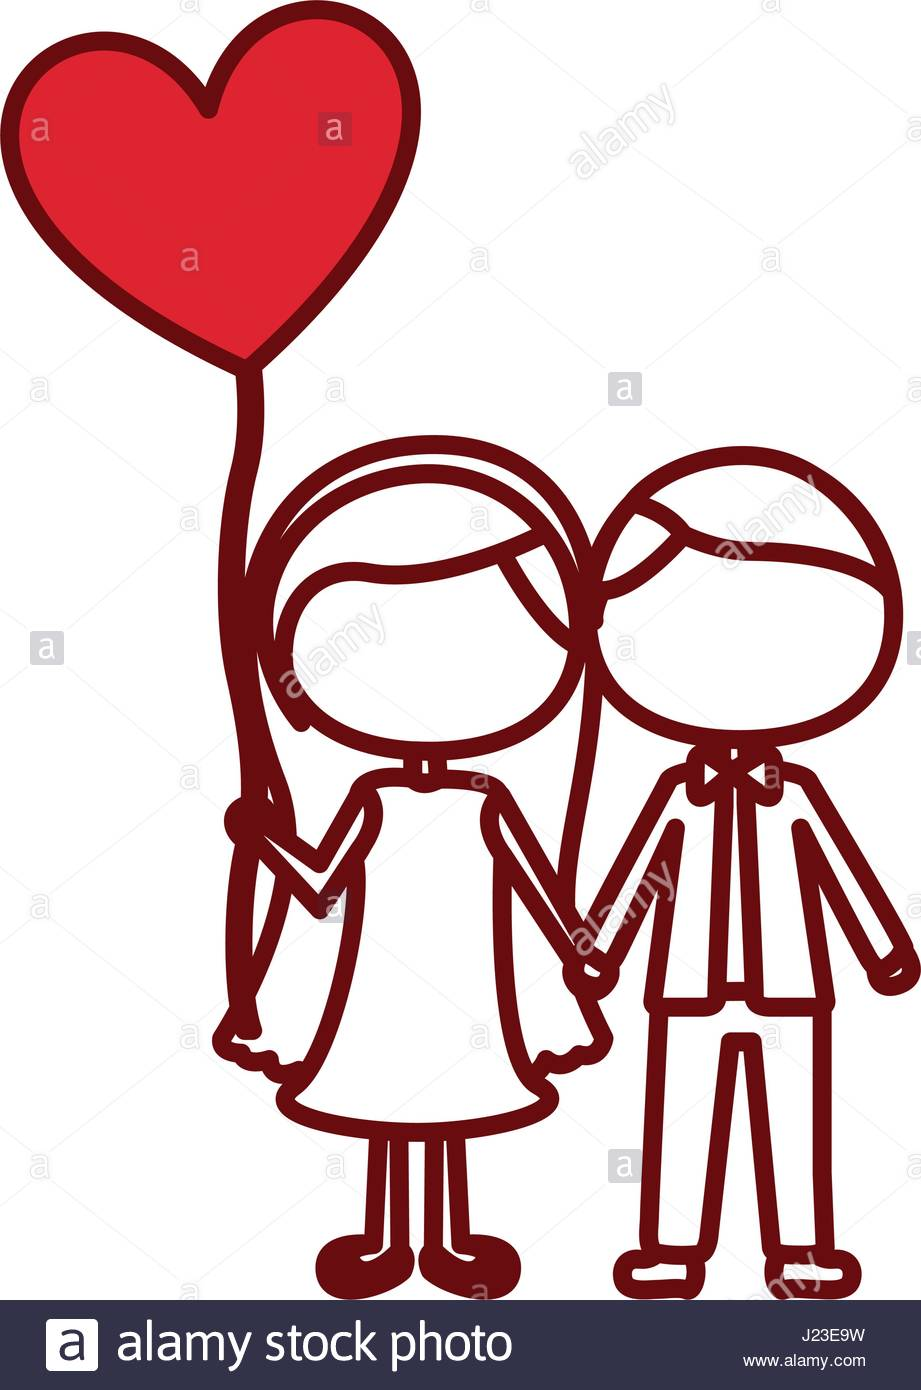 921x1390 Red Silhouette Of Caricature Faceless Couple And Him In Formal